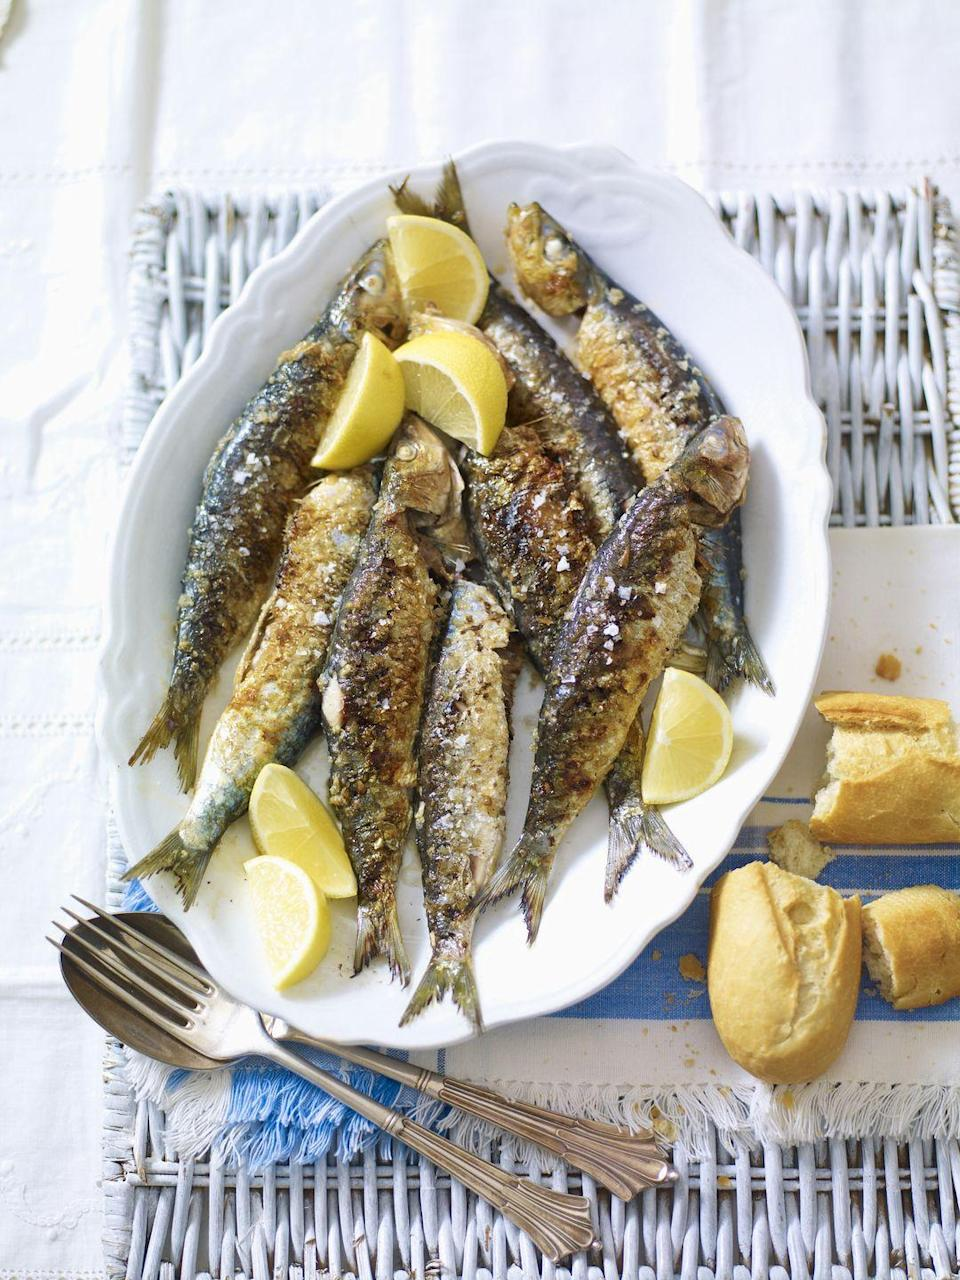 "<p>They may be small, but they're packed with omega-3s. Plus, <a href=""https://www.goodhousekeeping.com/health/diet-nutrition/g1967/vitamin-b12-super-foods-47012607/"" rel=""nofollow noopener"" target=""_blank"" data-ylk=""slk:sardines have less mercury than other fatty fish"" class=""link rapid-noclick-resp"">sardines have less mercury than other fatty fish</a> and come readily available in canned form. Just be sure to buy them packed in water, not oil.</p>"